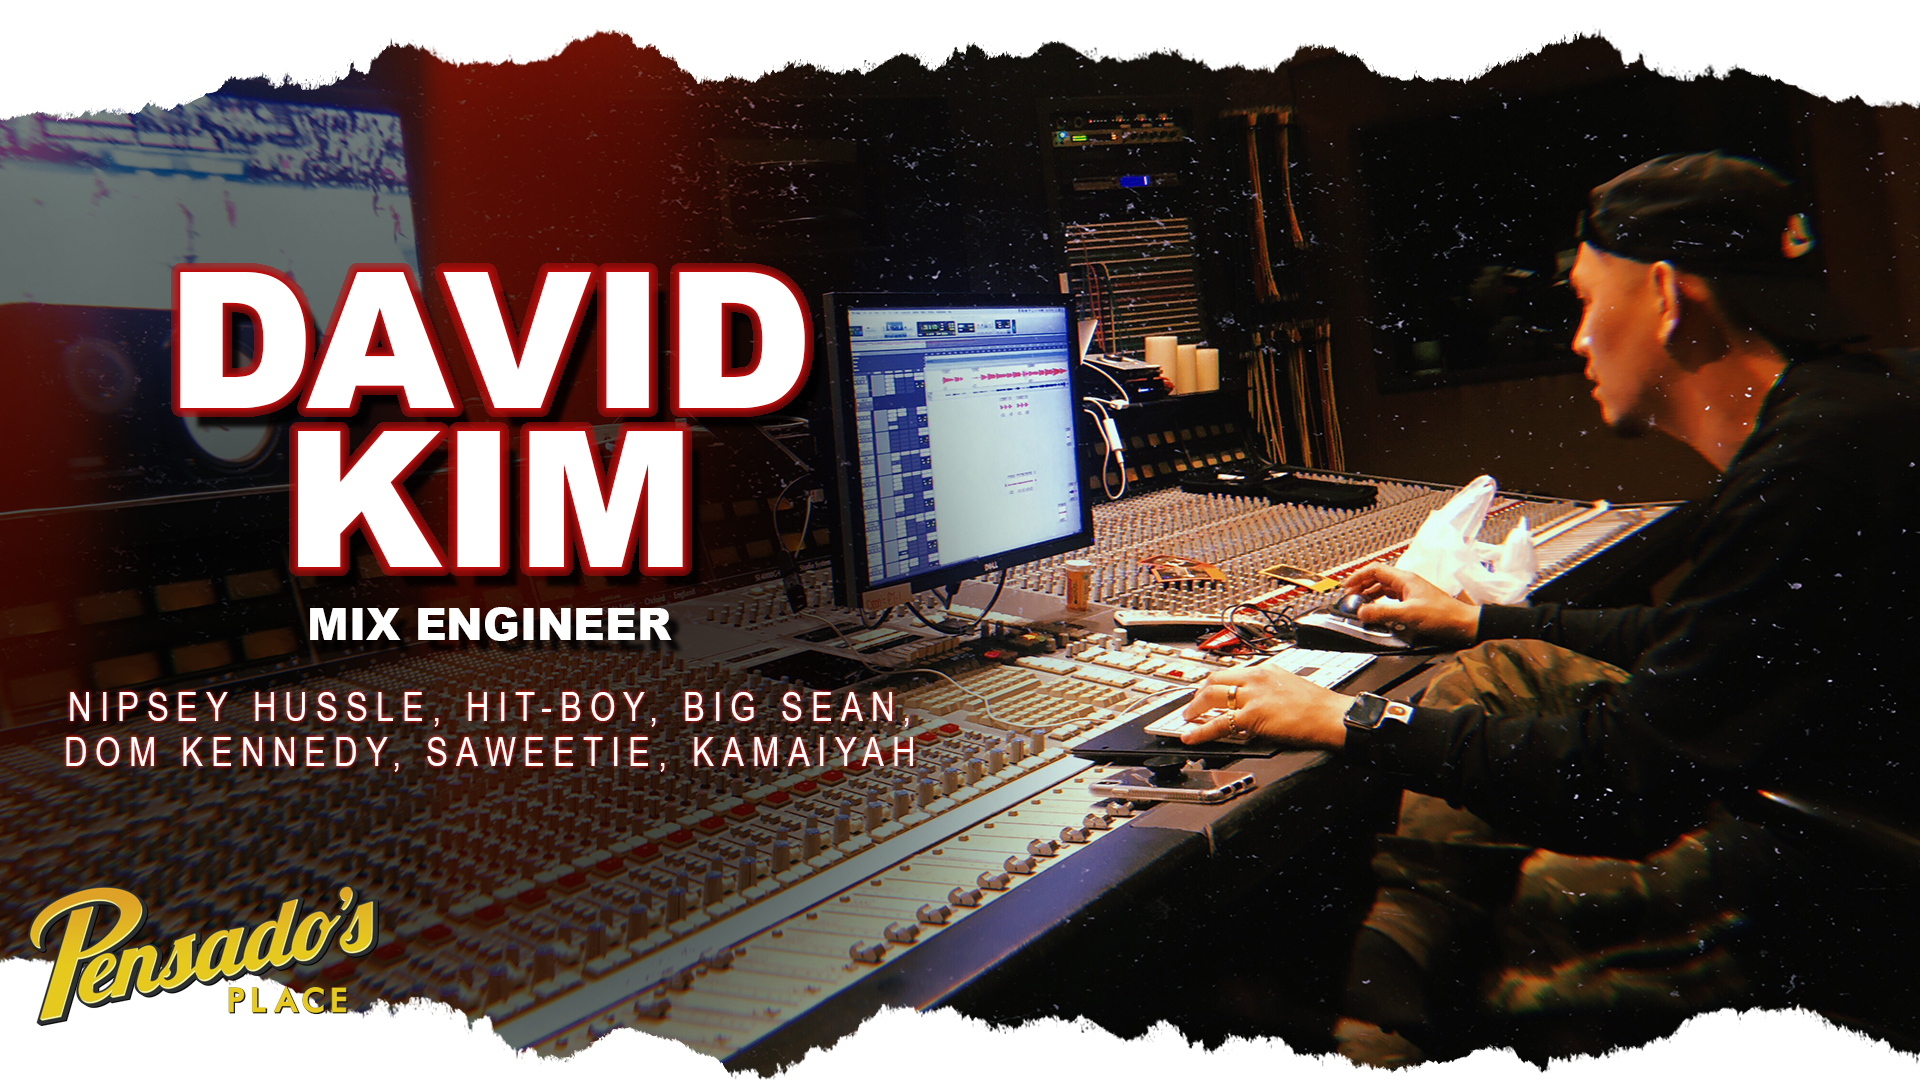 Grammy Award Winning Mix Engineer, David Kim